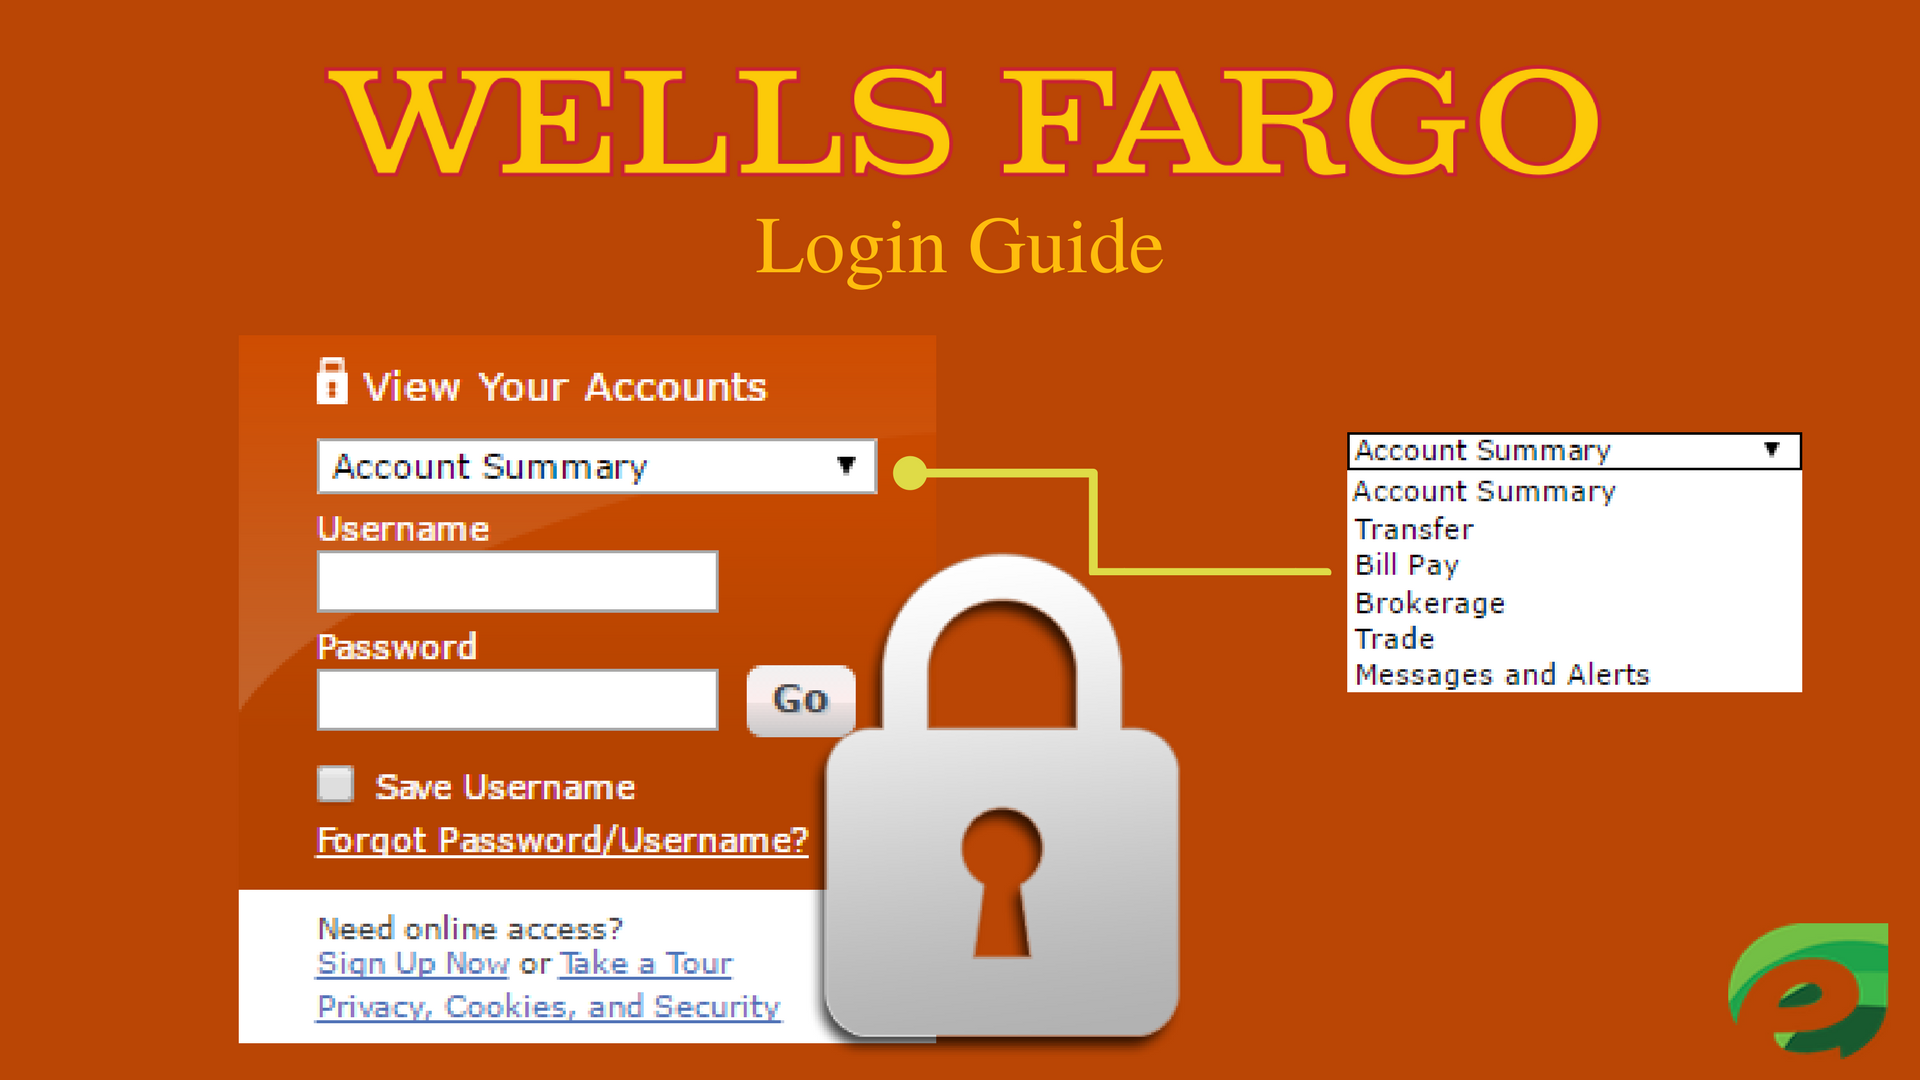 wells fargo login guide